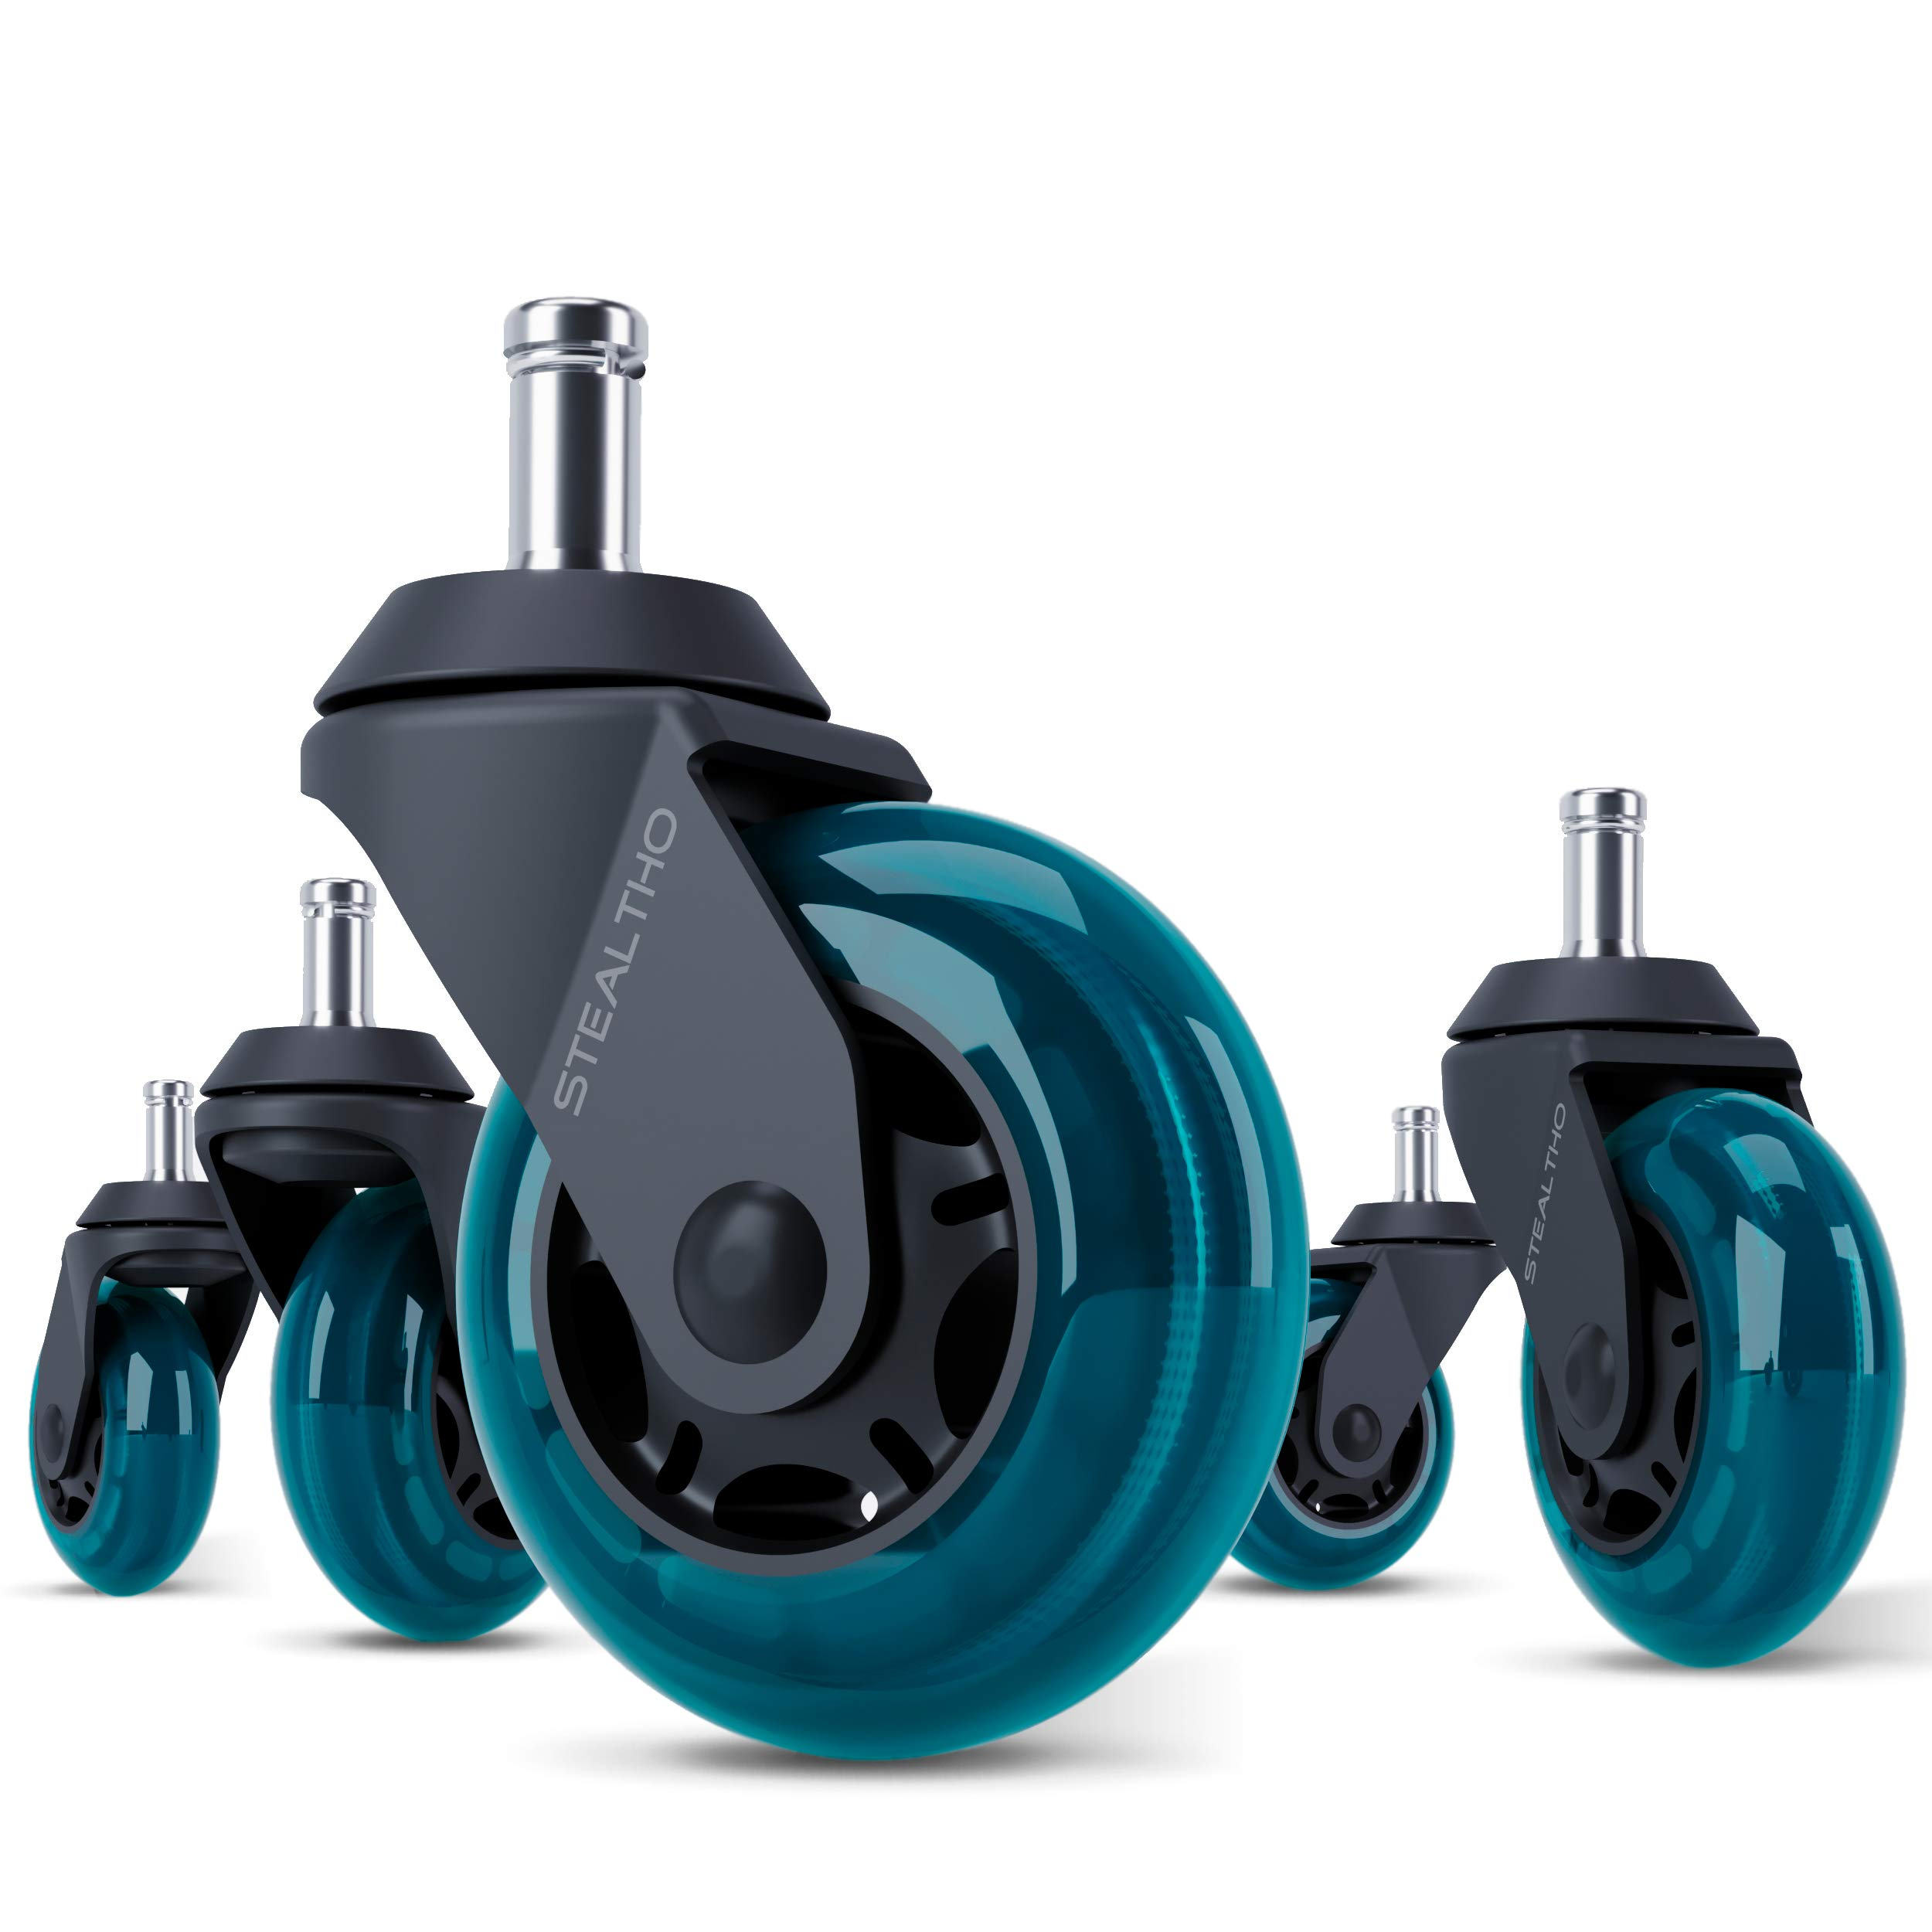 STEALTHO Replacement Office Chair Caster Wheels Set of 5 - Protect Your Floor - Quick & Quiet Rolling Over The Cables - No More Chair Mat Needed - Blue Polyurethane - Standard Stem 7/16 by STEALTHO